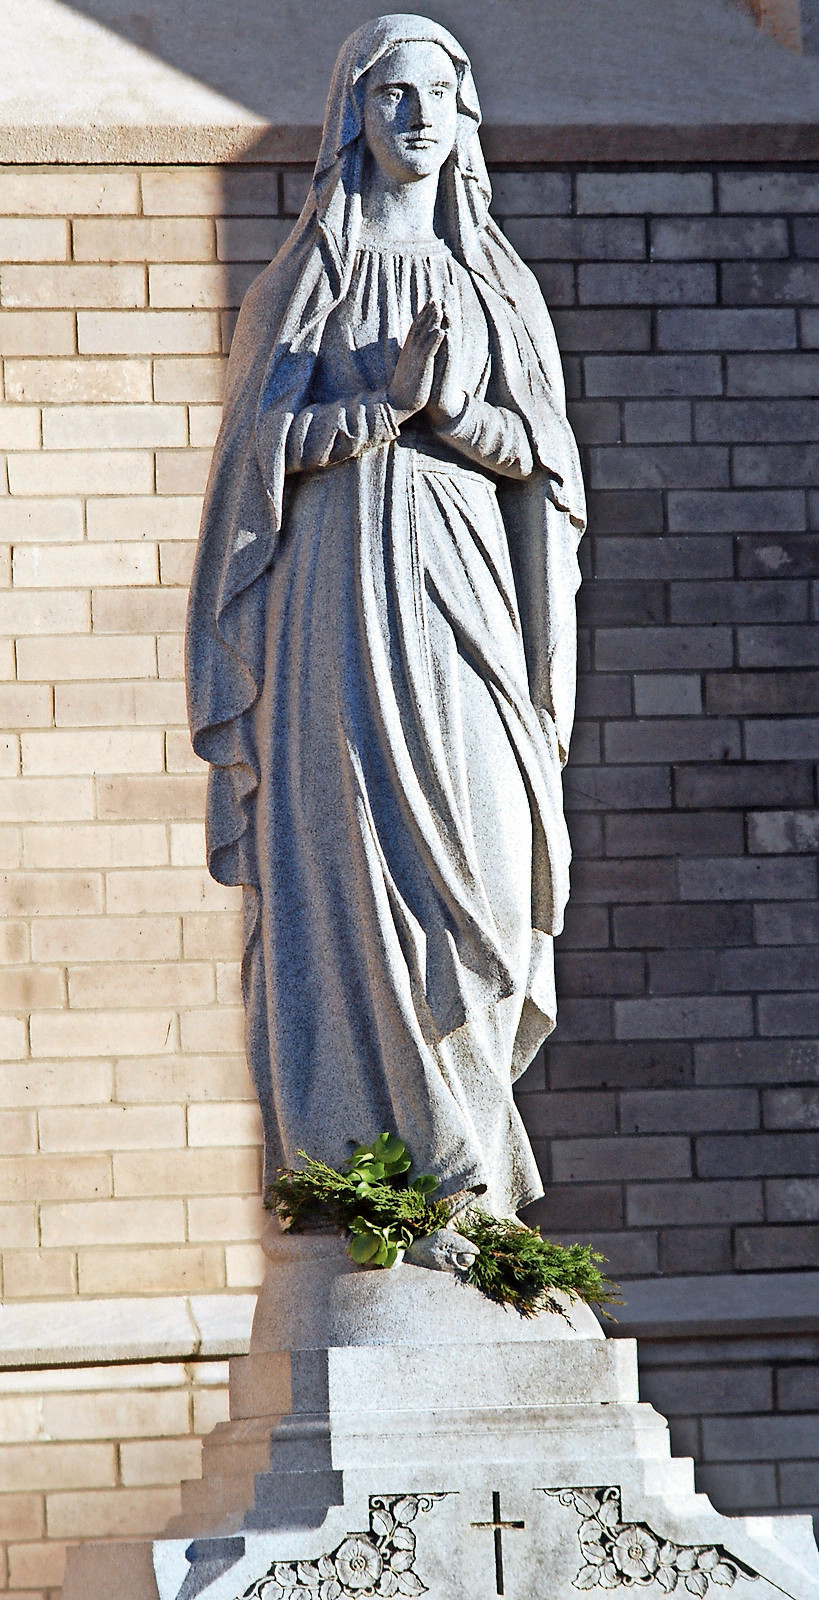 A statue of the Virgin Mary, at the entrance to St. Agnes Cathedral.